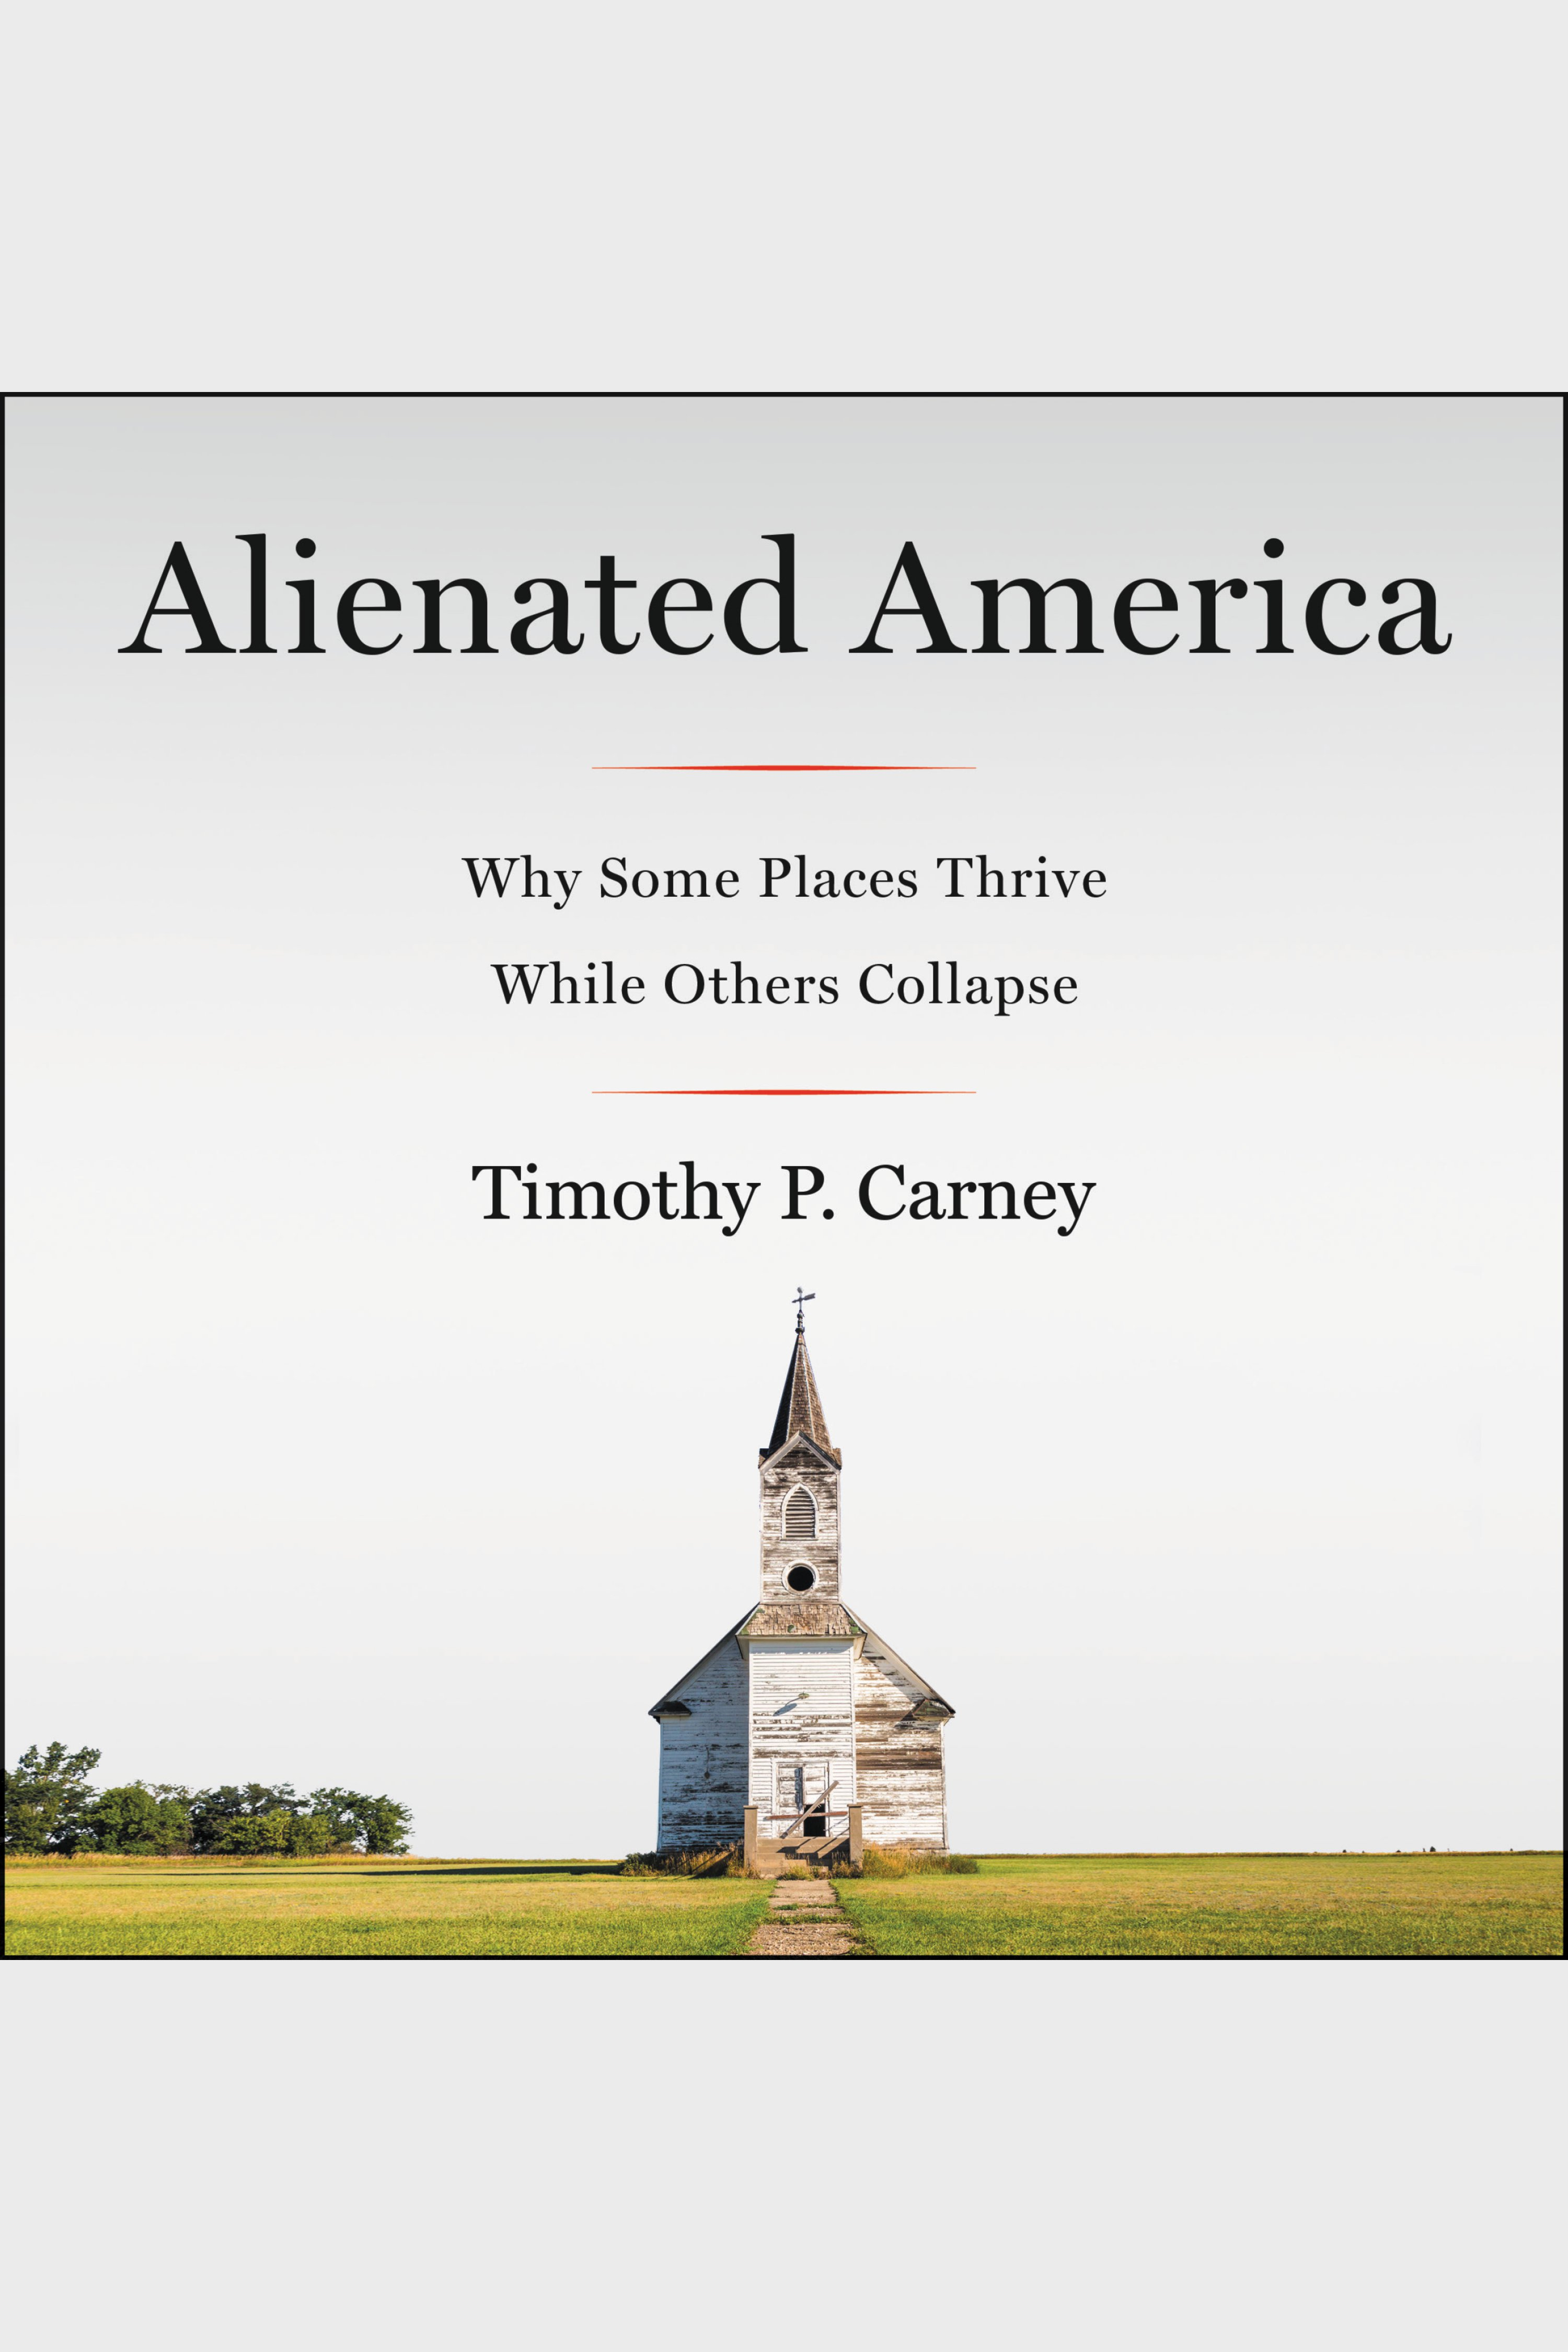 Alienated America Why Some Places Thrive While Others Collapse